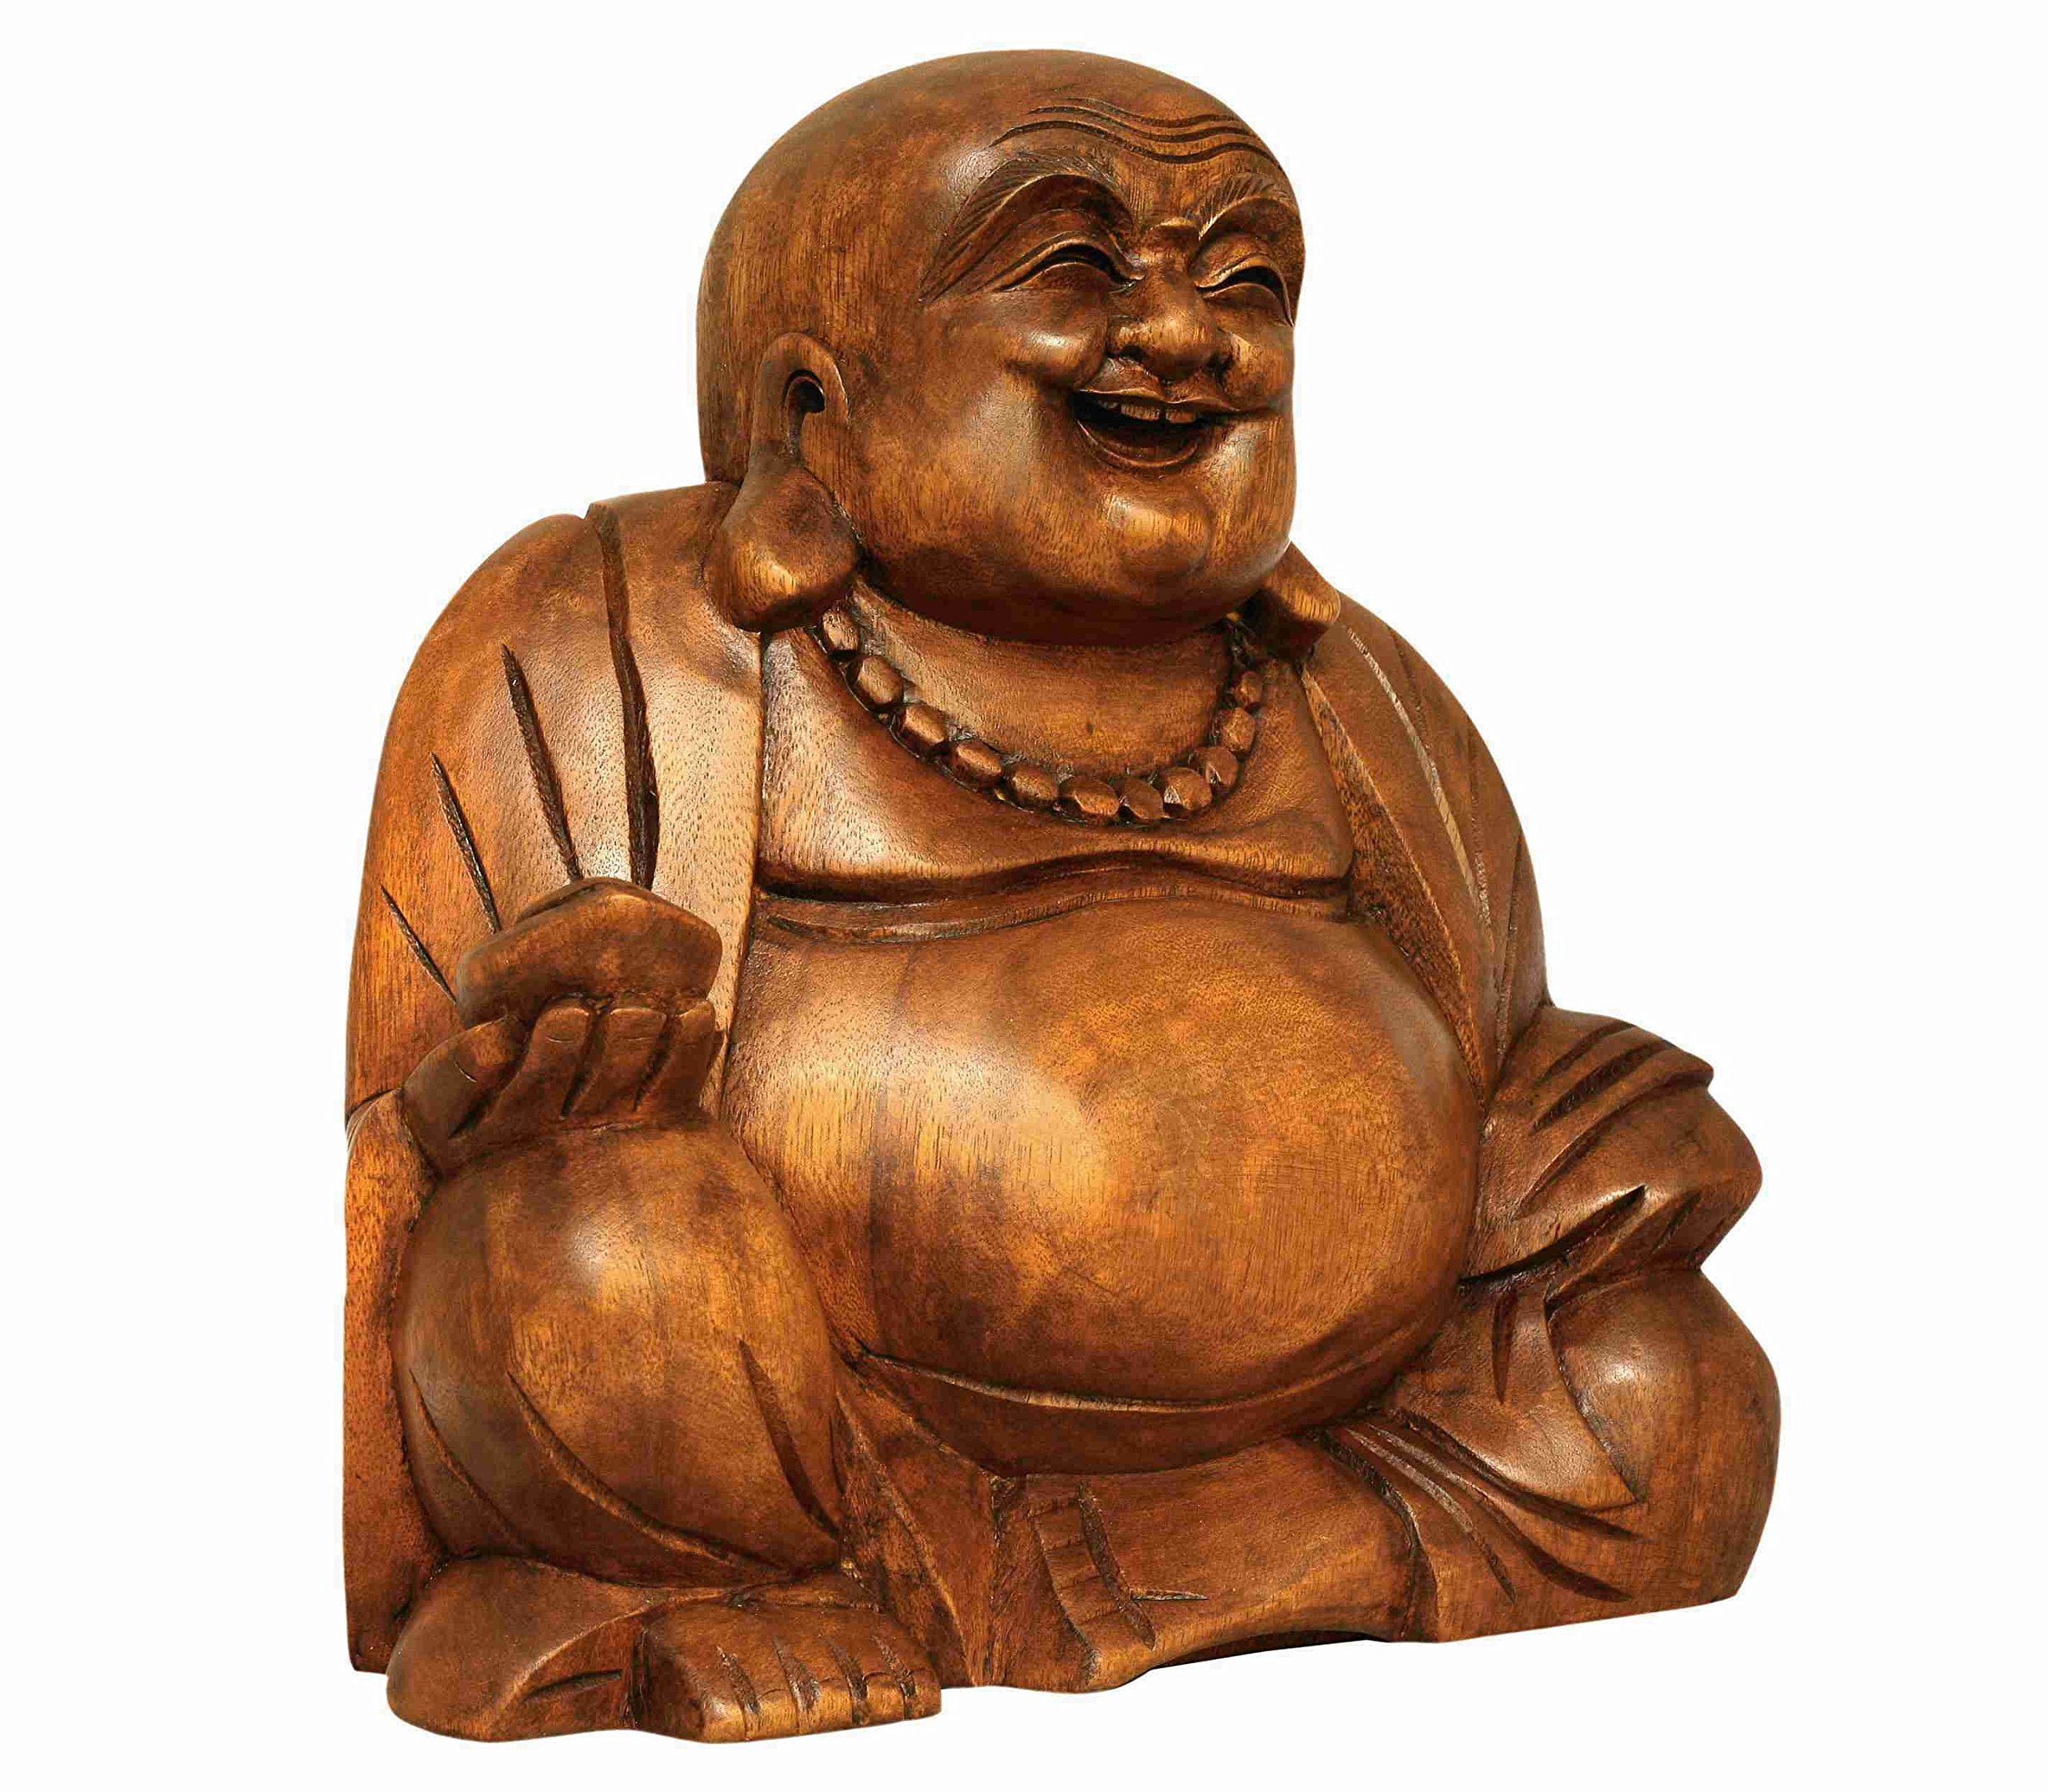 G6 COLLECTION 8'' Wooden Laughing Happy Buddha Handmade Art Statue Handcrafted Sculpture Home Decor (Small) by G6 Collection (Image #2)